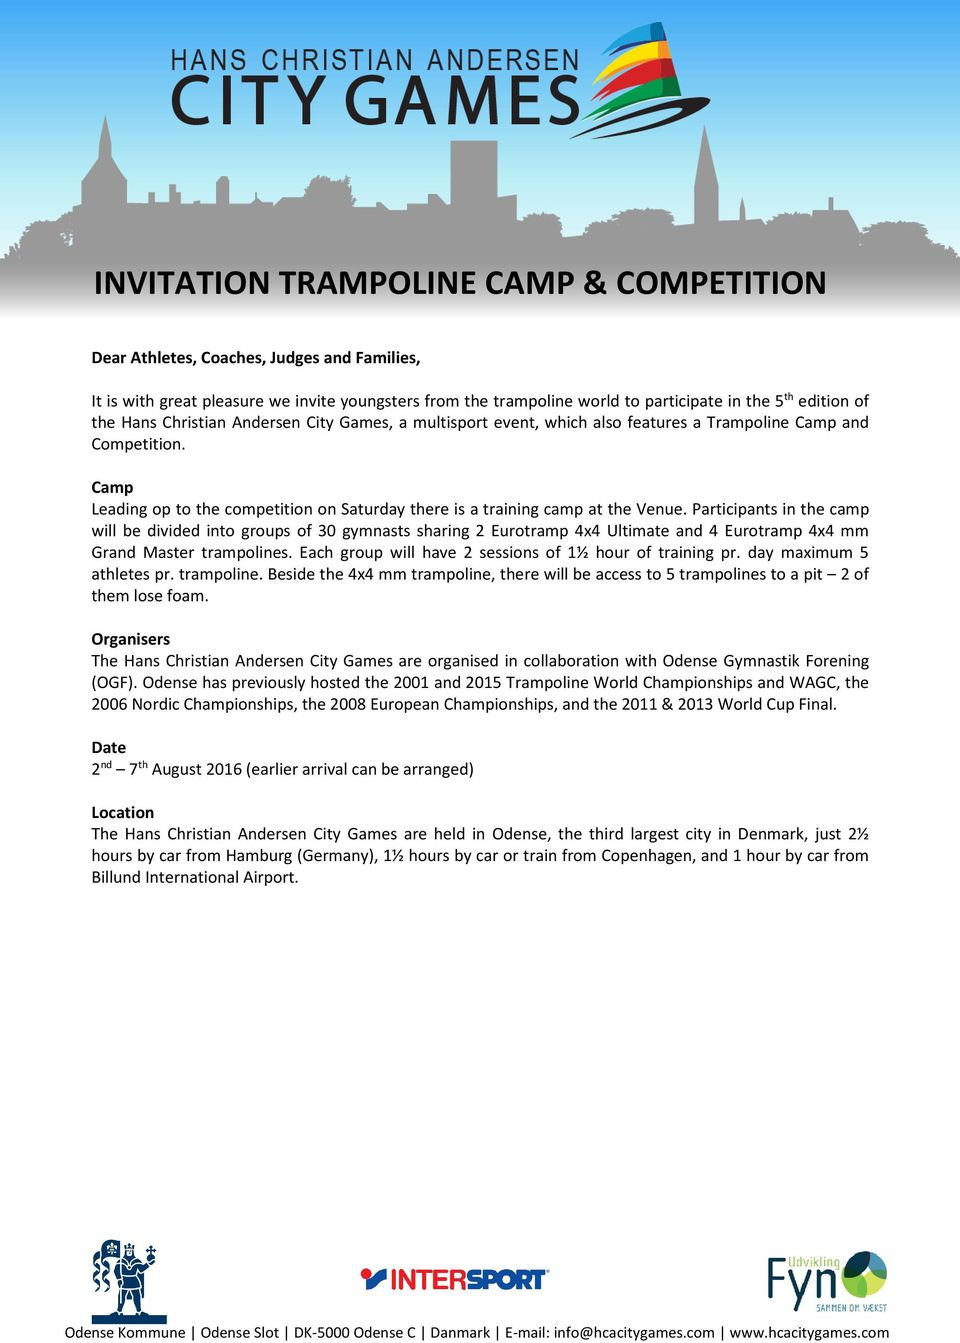 Participants in the camp will be divided into groups of 30 gymnasts sharing 2 Eurotramp 4x4 Ultimate and 4 Eurotramp 4x4 mm Grand Master trampolines.